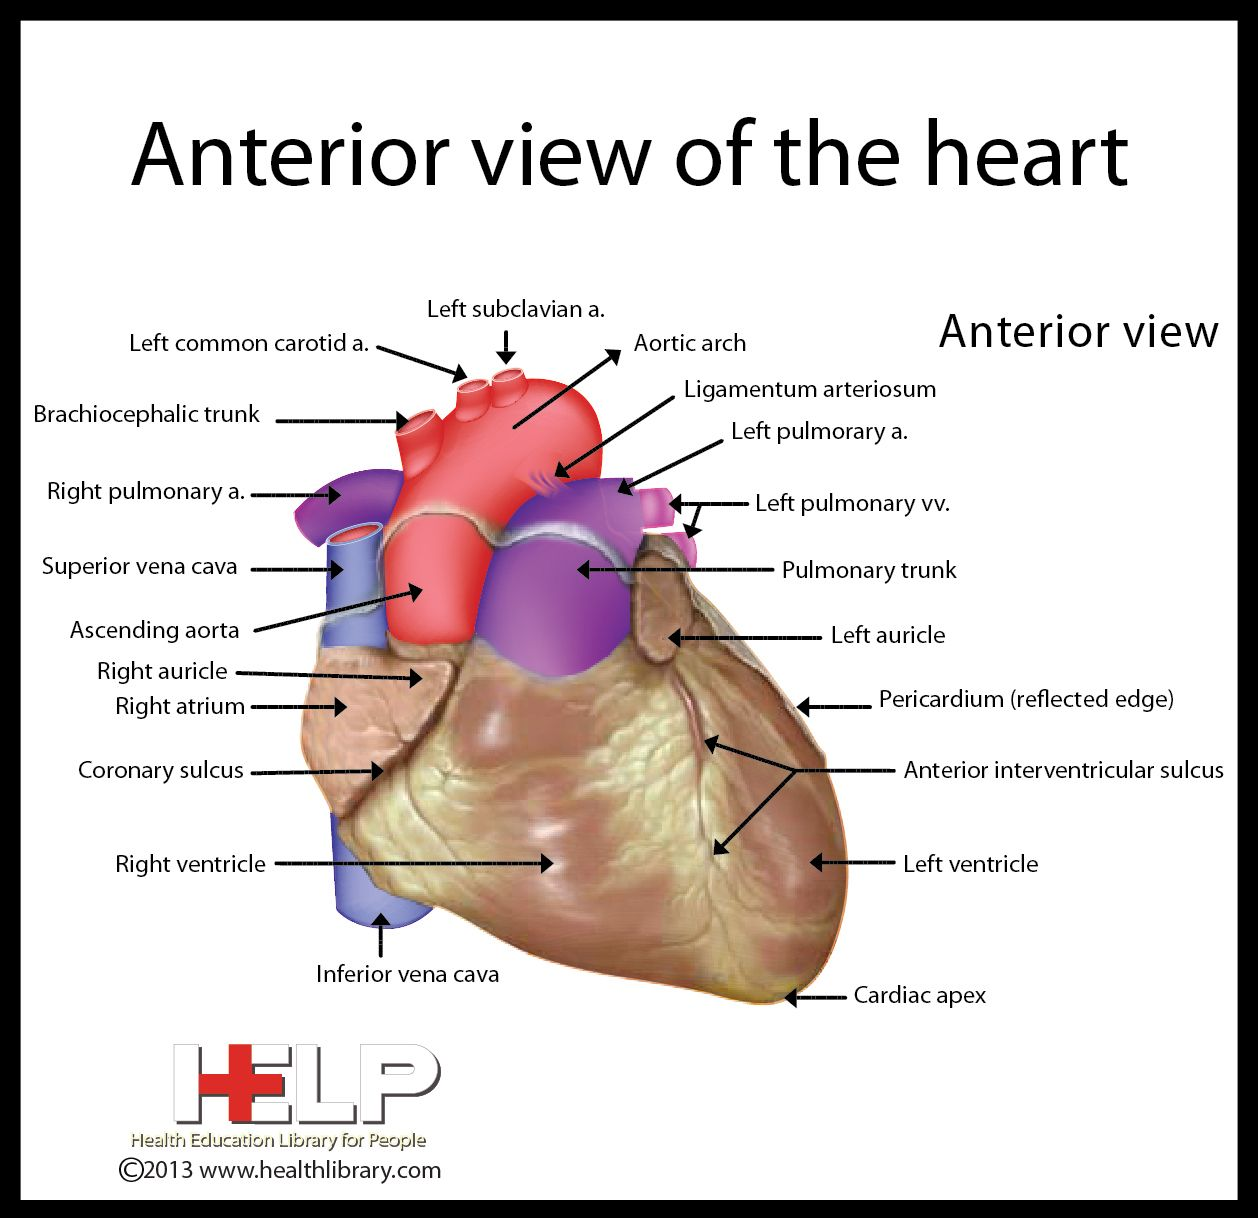 human heart diagram posterior battery wiring for club car golf cart view of the valves pictures to pin on